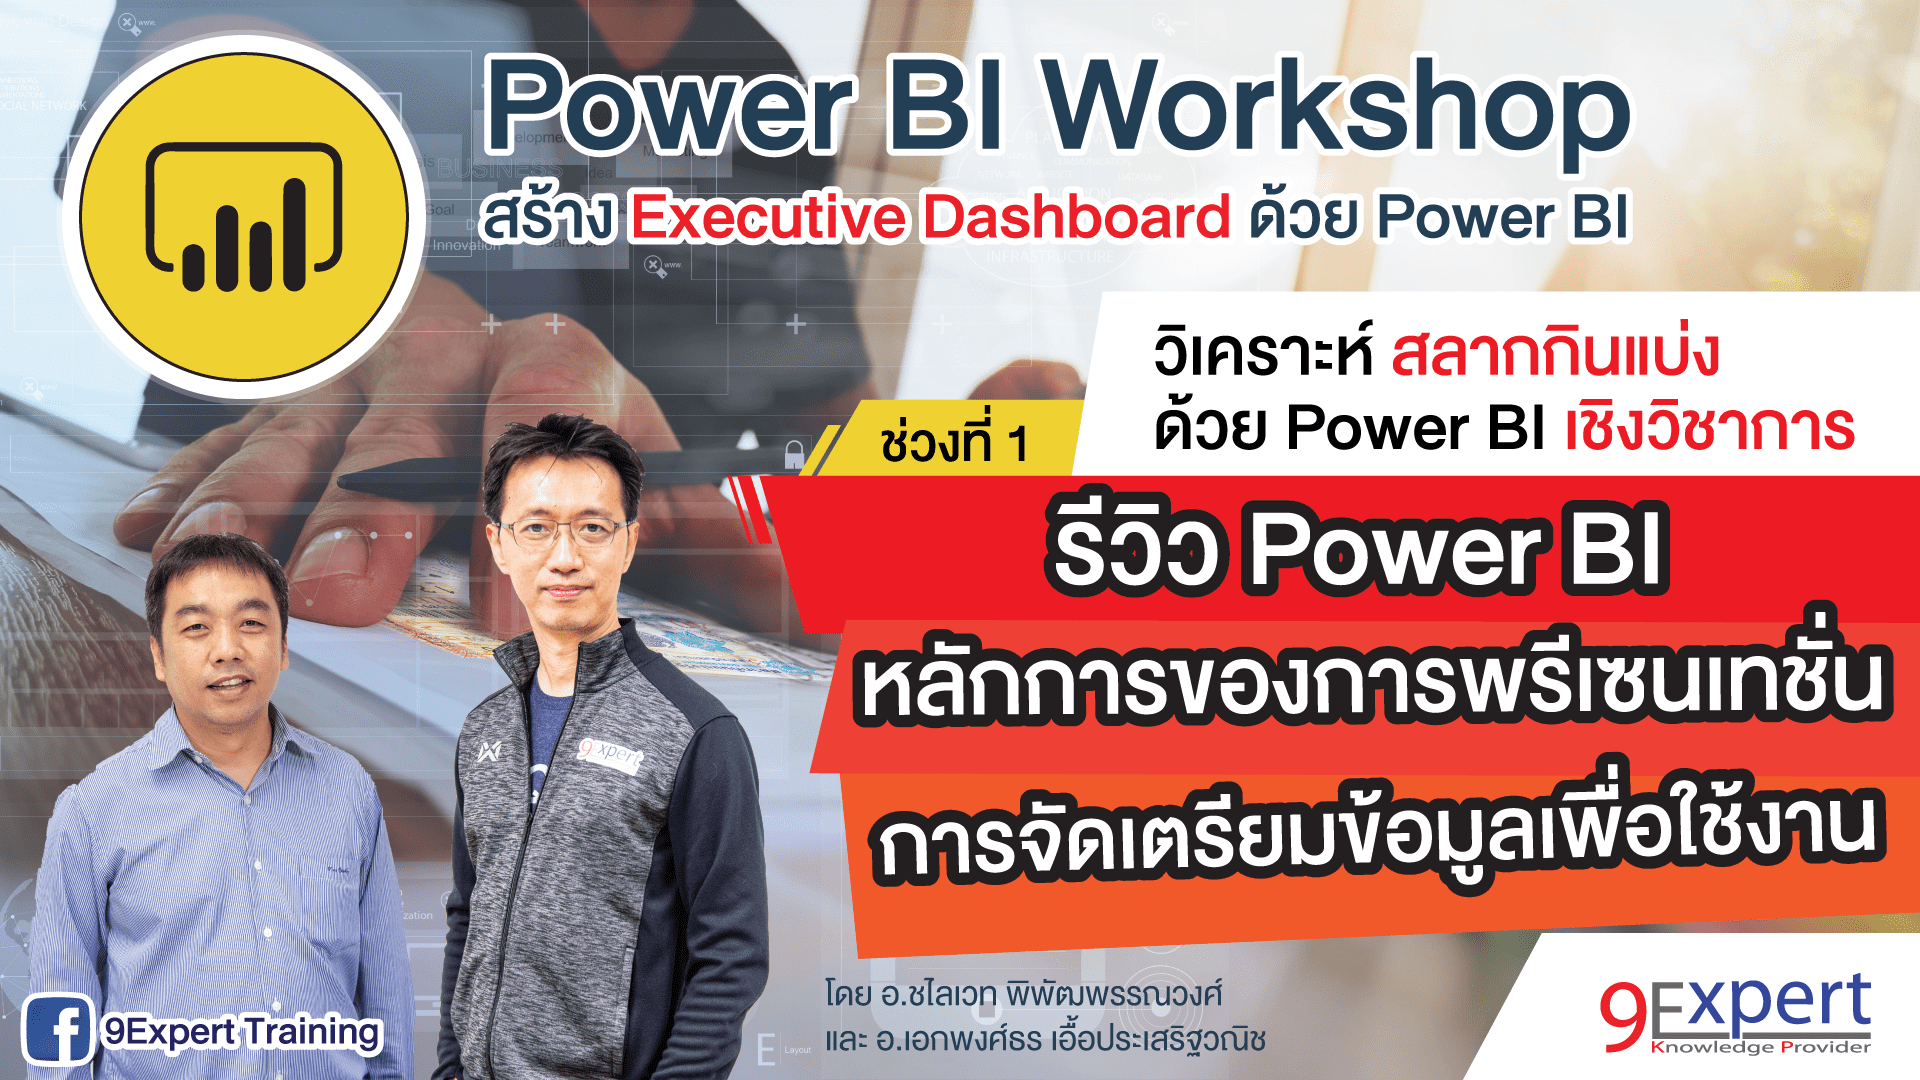 Power BI Workshop สร้าง Executive Dashboard ด้วย Microsoft Power BI Desktop